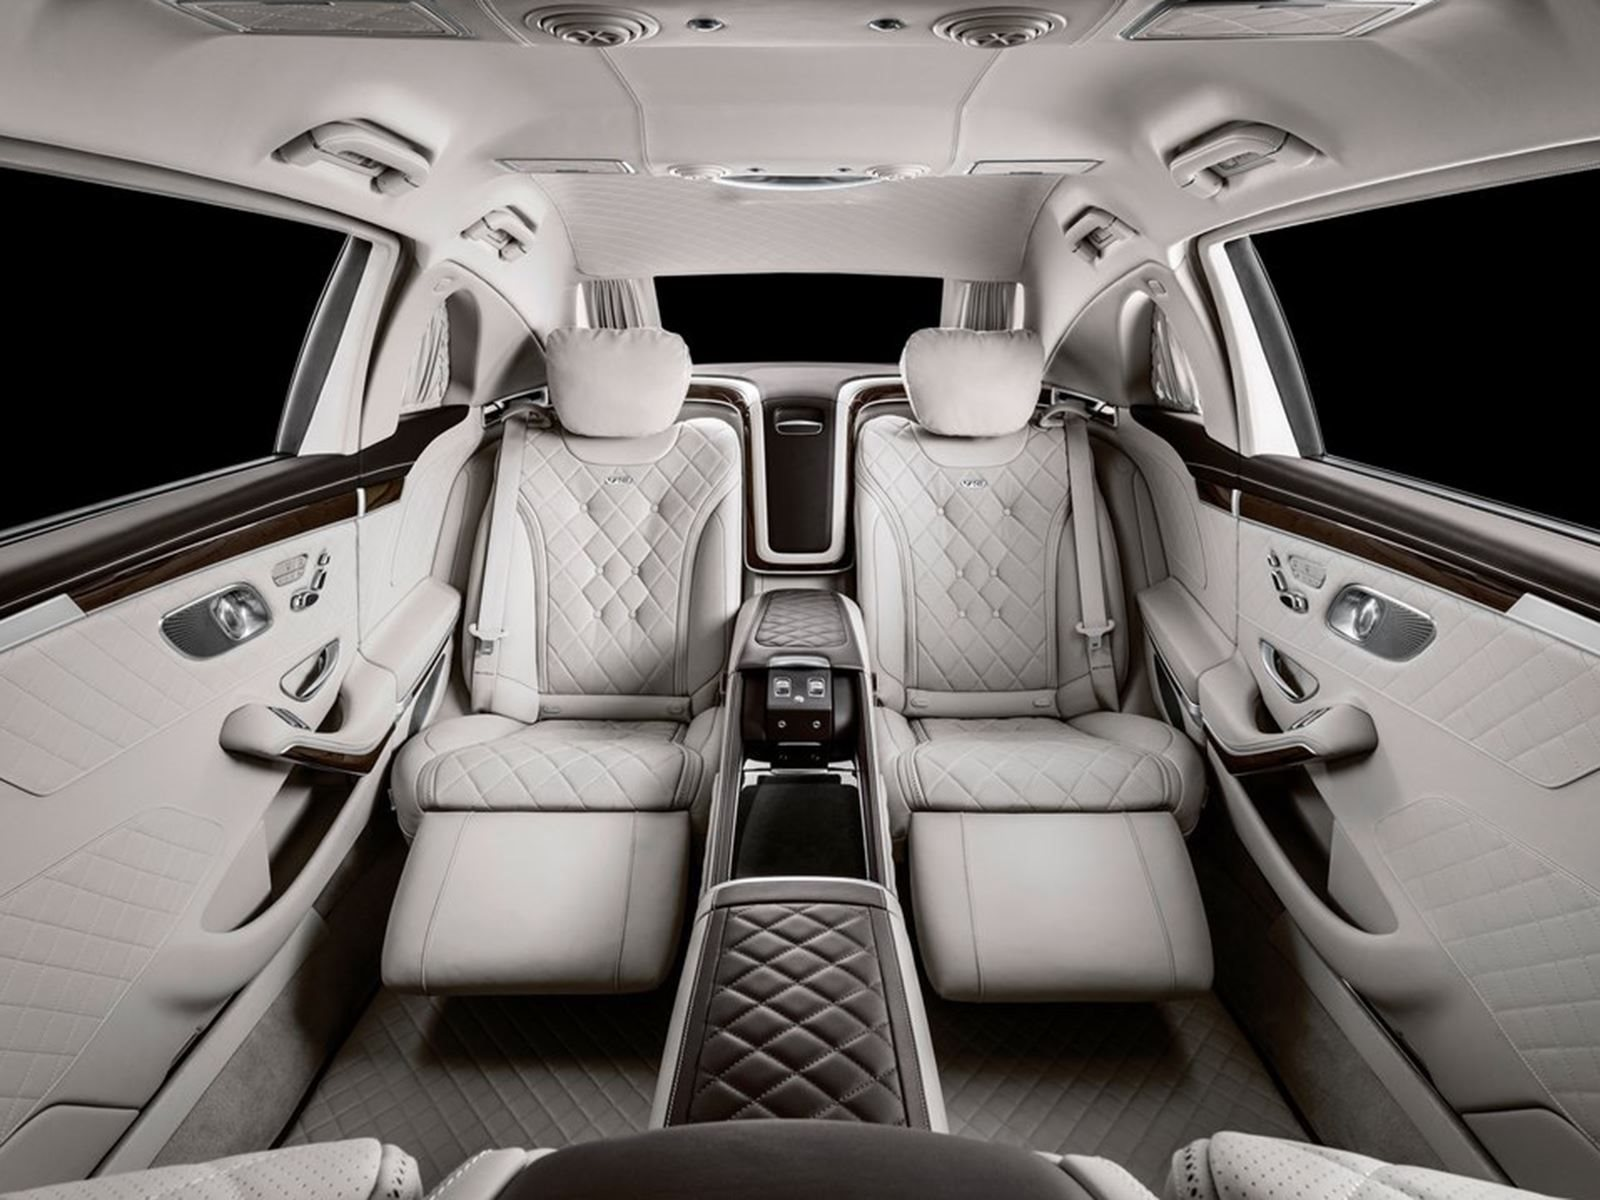 Introducing The Most Luxurious S Class Yet The S650 Maybach Pullman